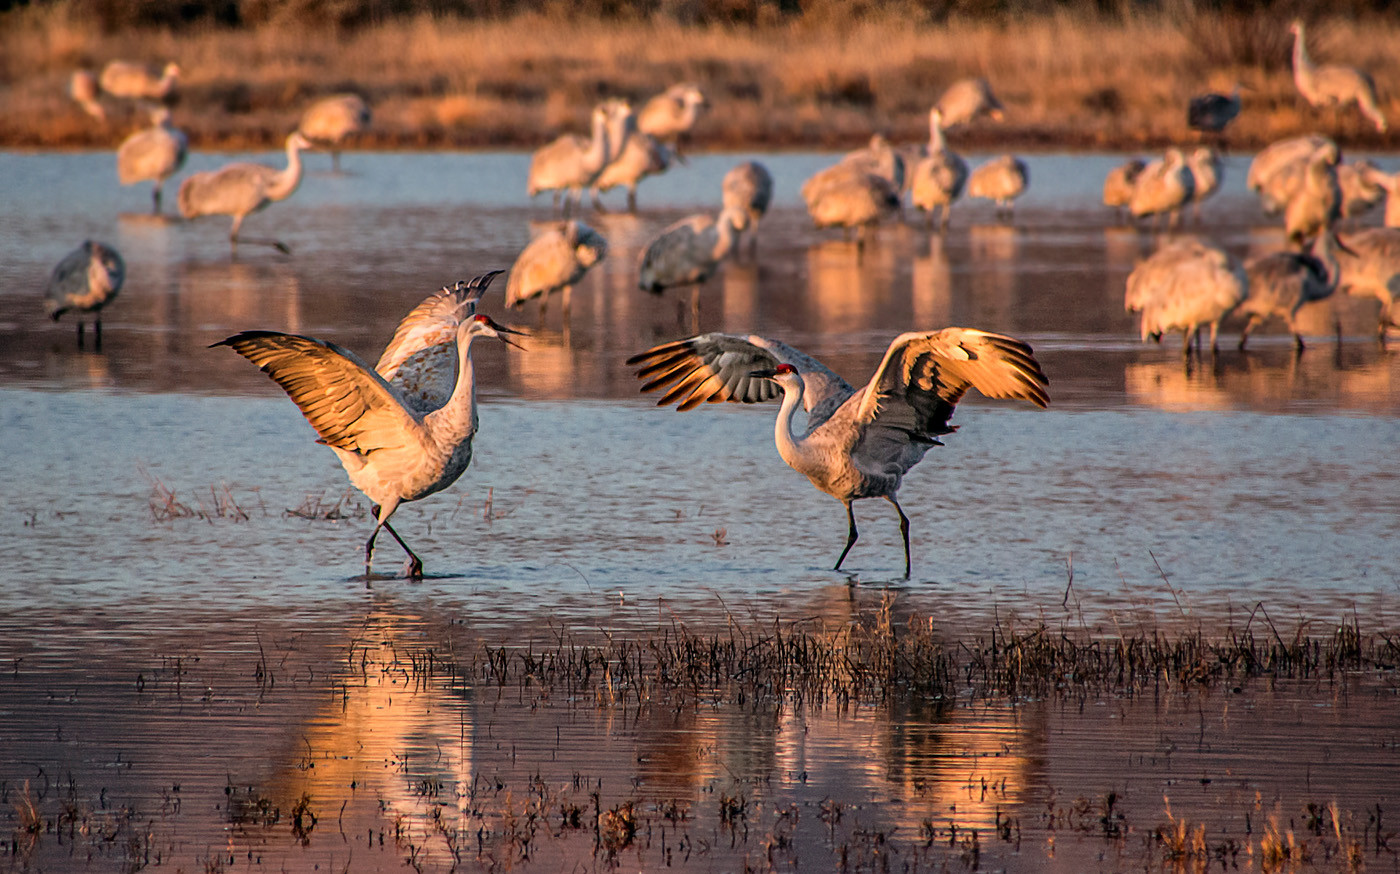 18 DANCING SANDHILL CRANES AT DAWN by Pam Sherren